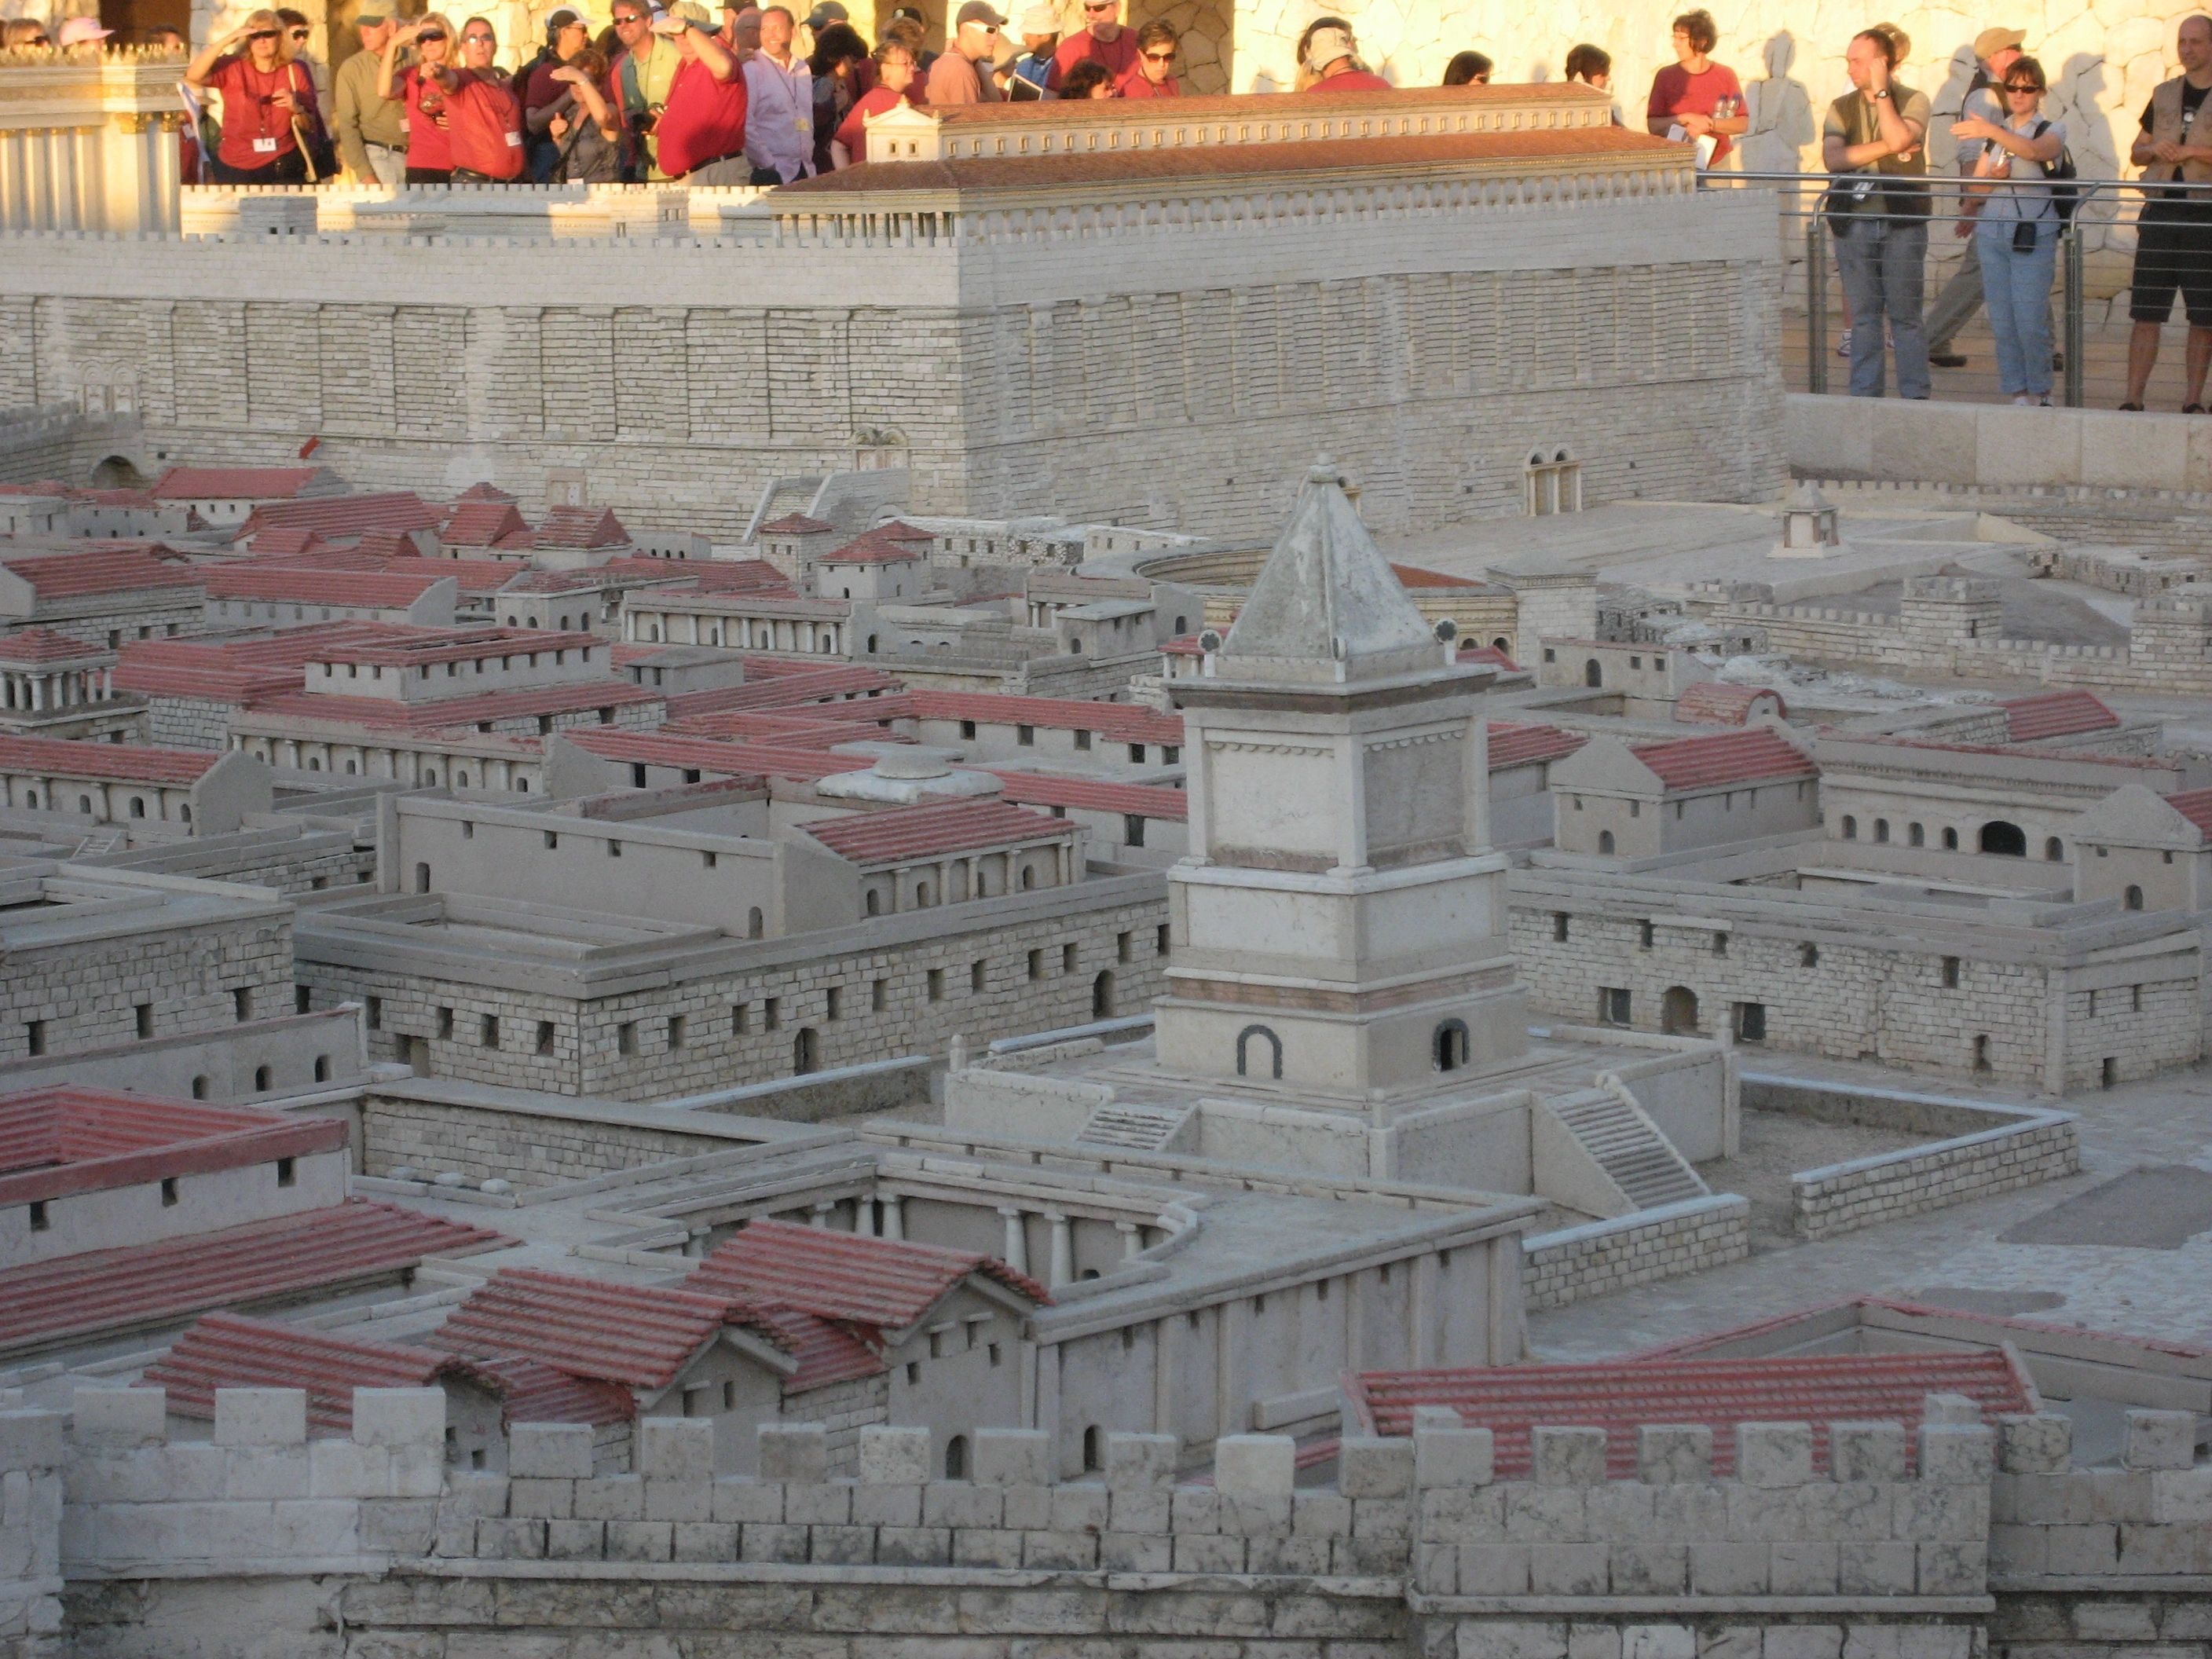 Model of Jerusalem in Jesus' day